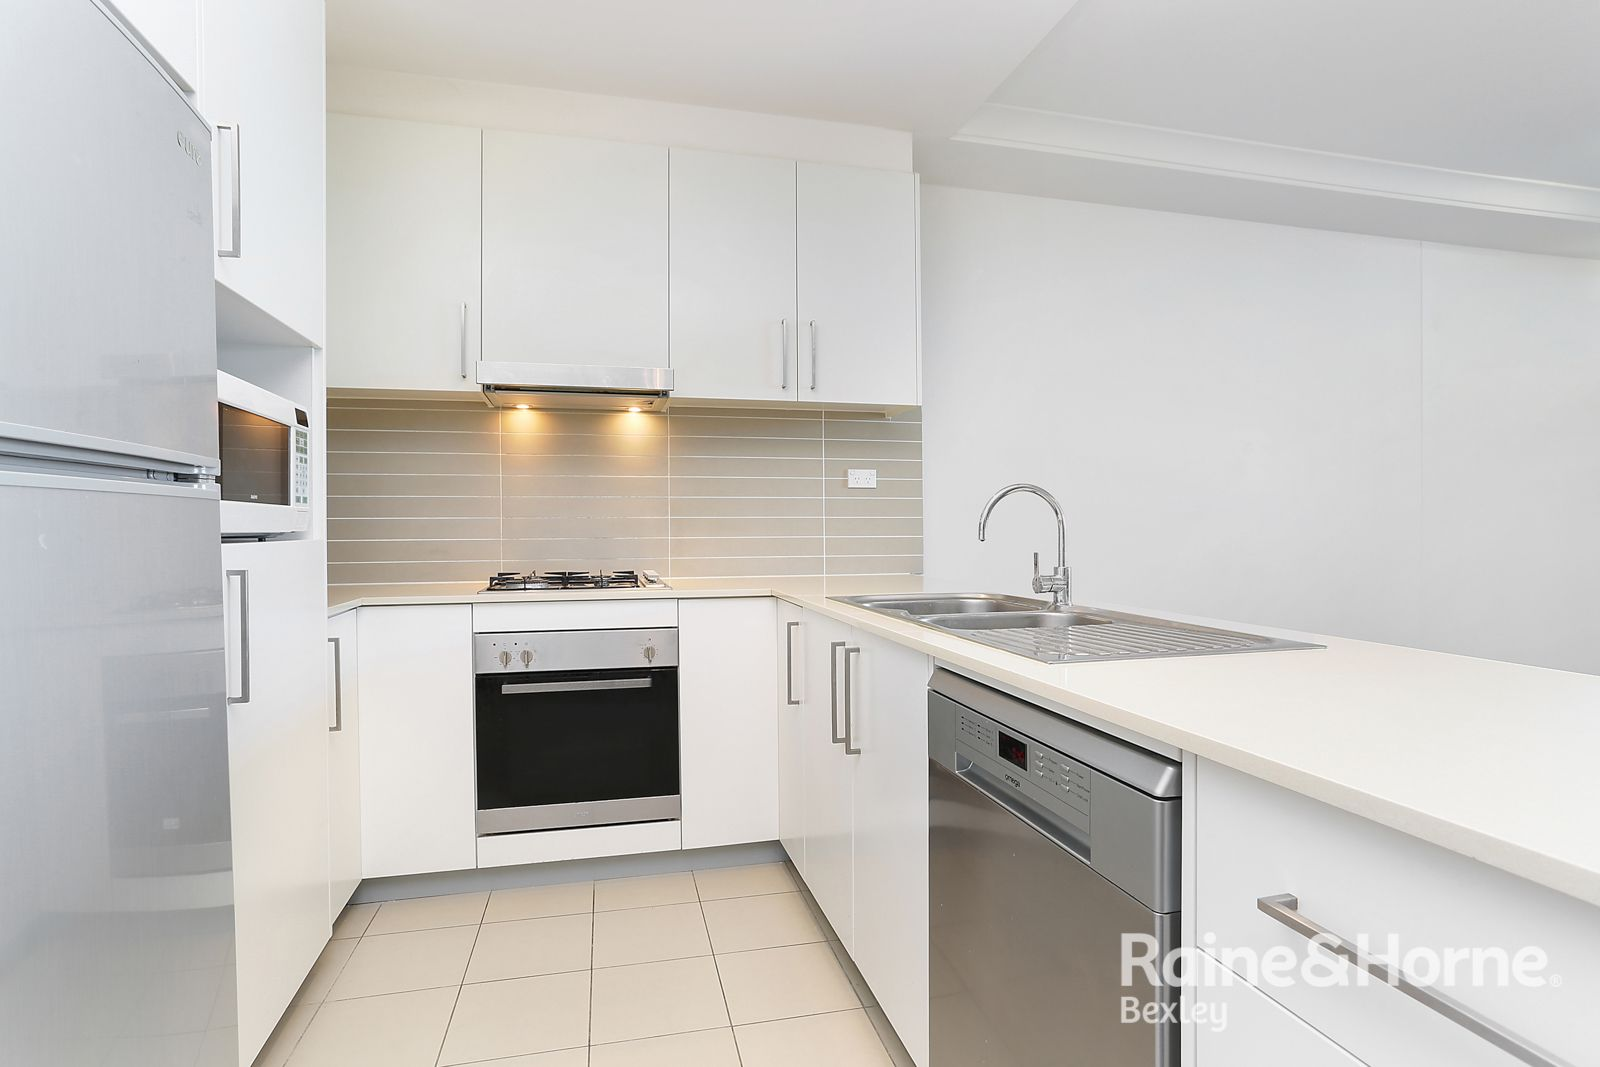 H506/9-11 Wollongong Road, Arncliffe NSW 2205, Image 2